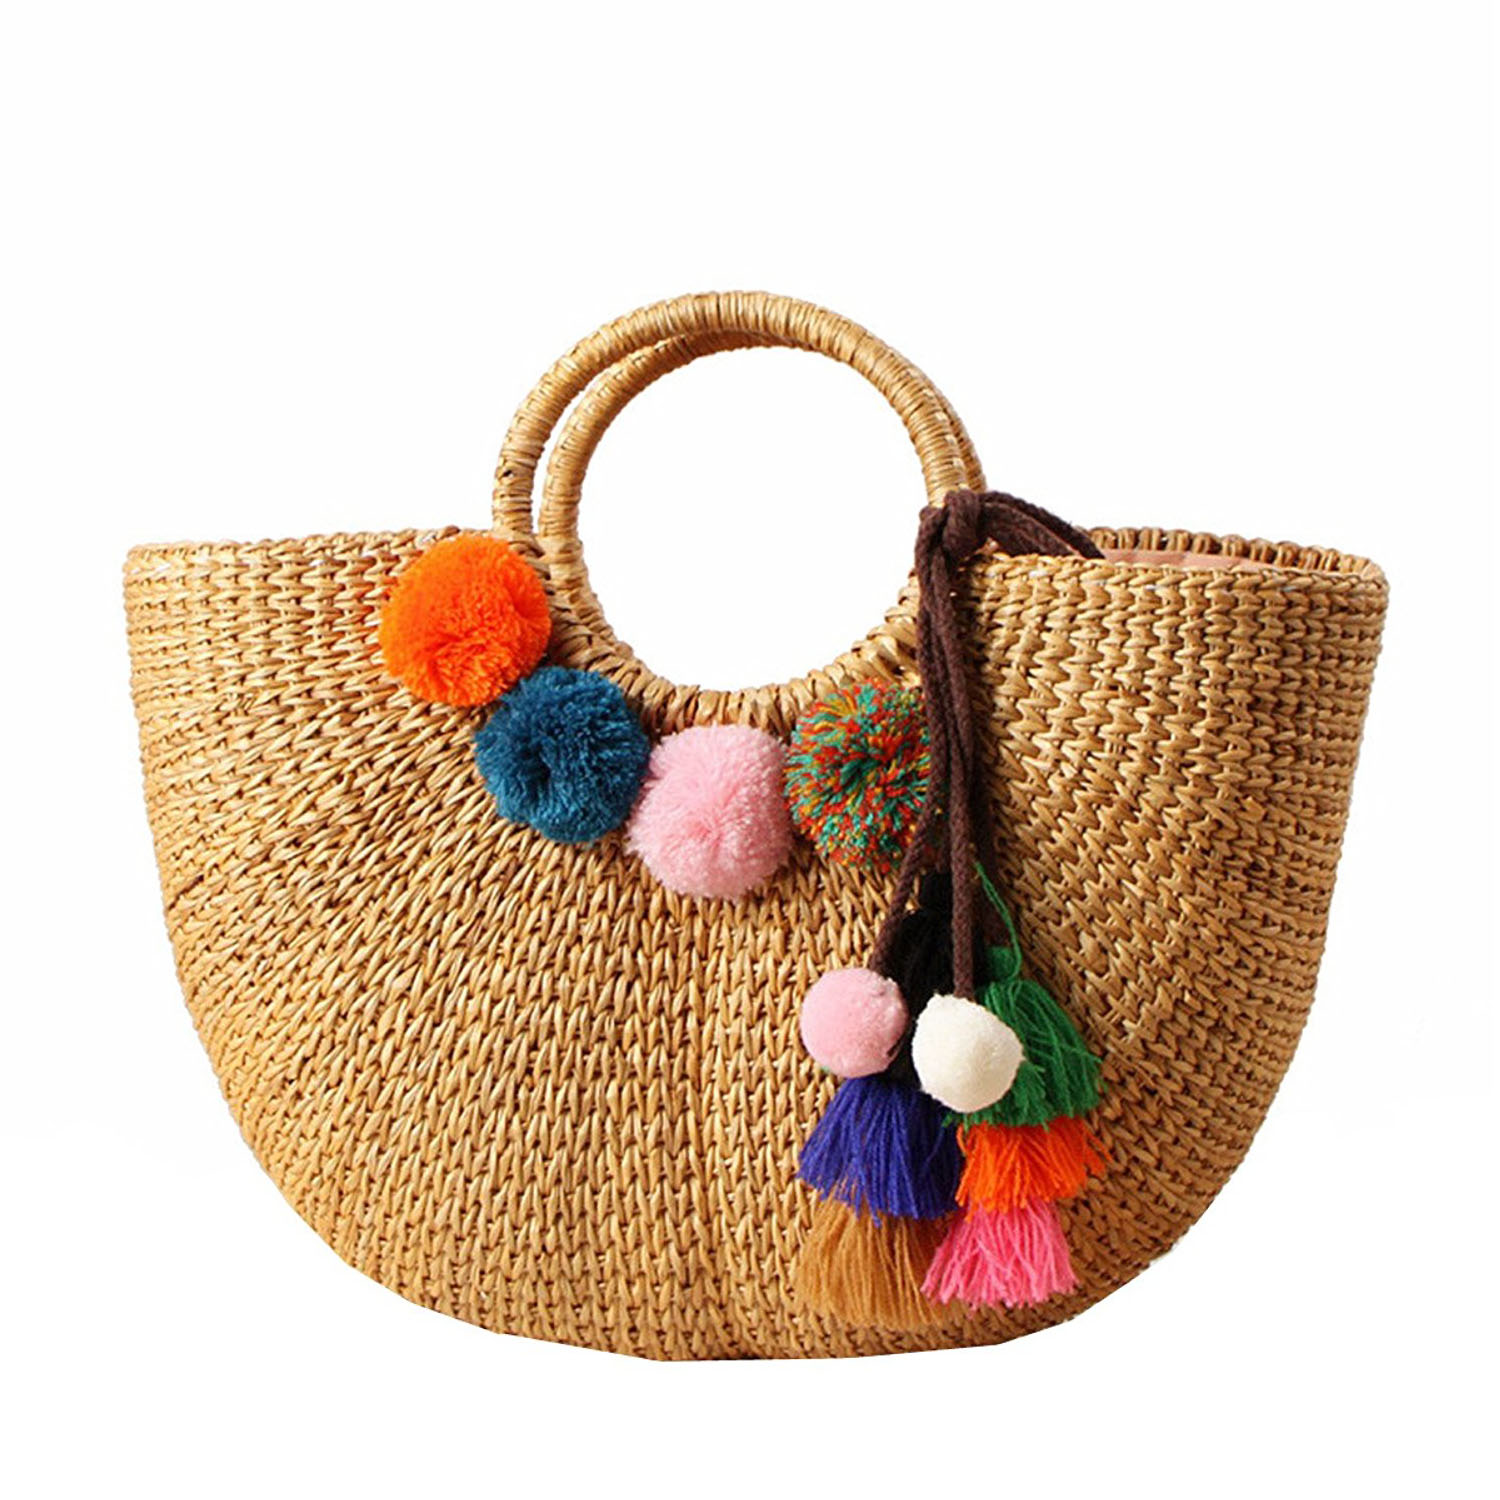 DCOS Womens Vintage Straw Woven Handbags Casual Beach Vacation Large Tote Bags With Round Handle Ring(Hairball)Top-Handle Bags   -